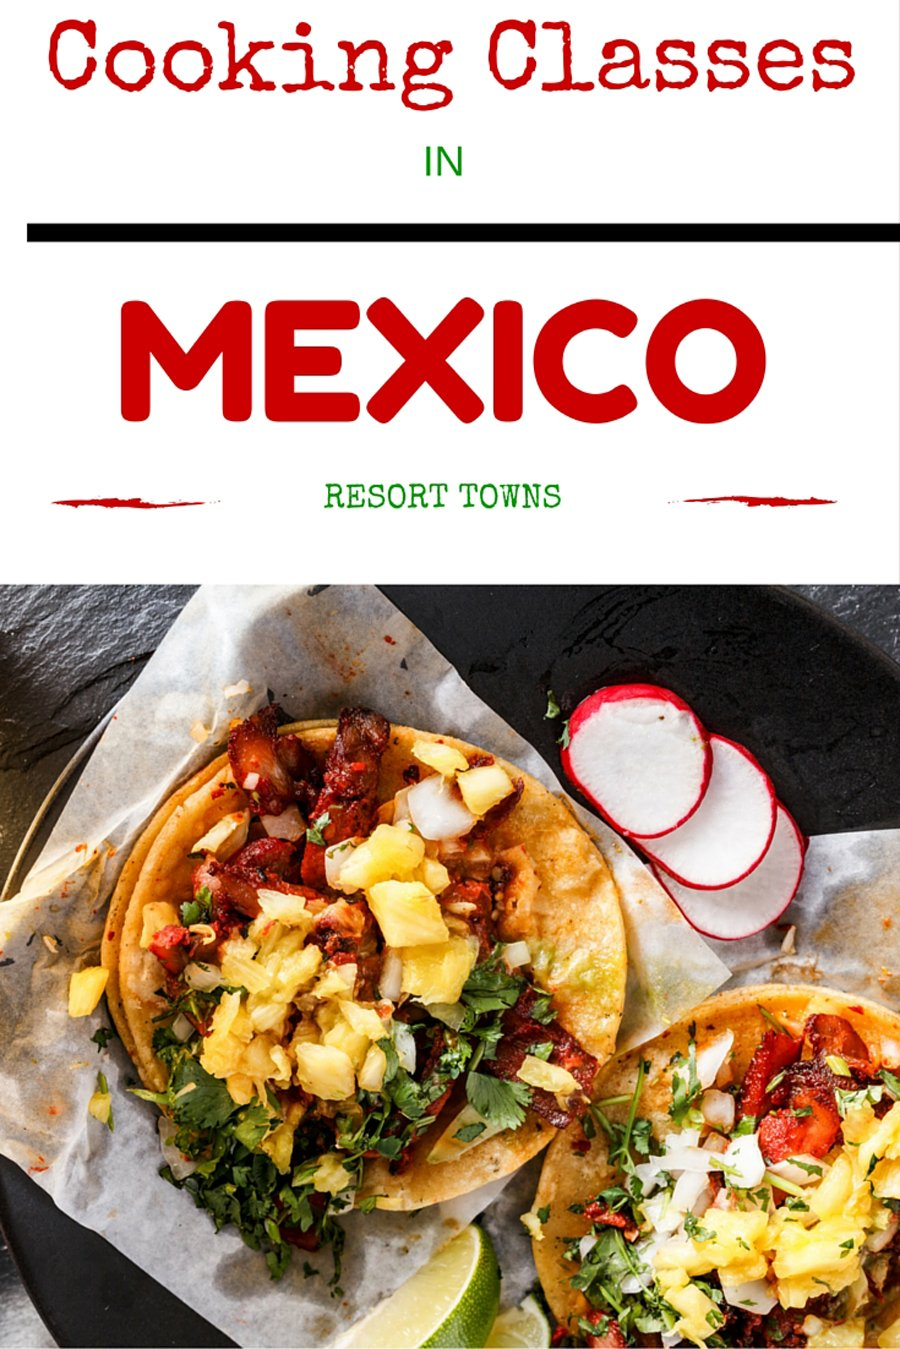 When you think about eating in Cancun and Cabo San Lucas, do you imagine only tourist taco menus and Mexican party bars? Why not sign up for a cooking class that will open your eyes to the vibrant food traditions thriving in both of these Mexican resort towns. We've got all the details.